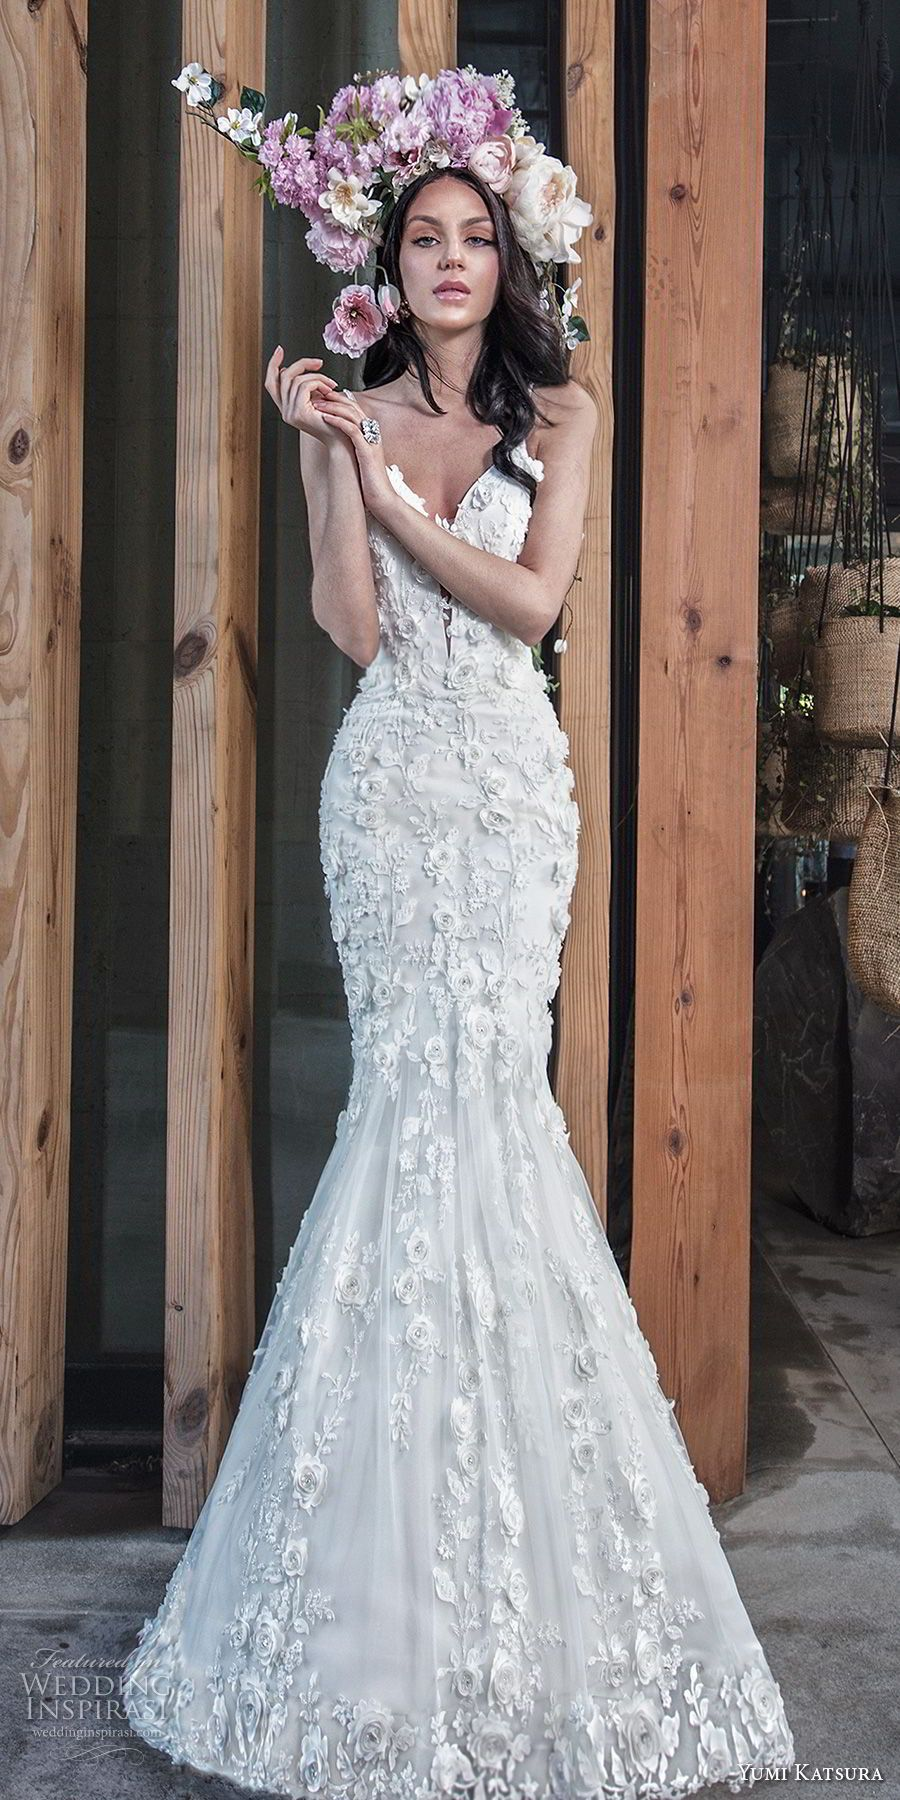 cfadf3435b71f yumi katsura spring 2019 bridal sleeveless thin strap deep plunging  sweetheart neckline full embellishment romantic mermaid